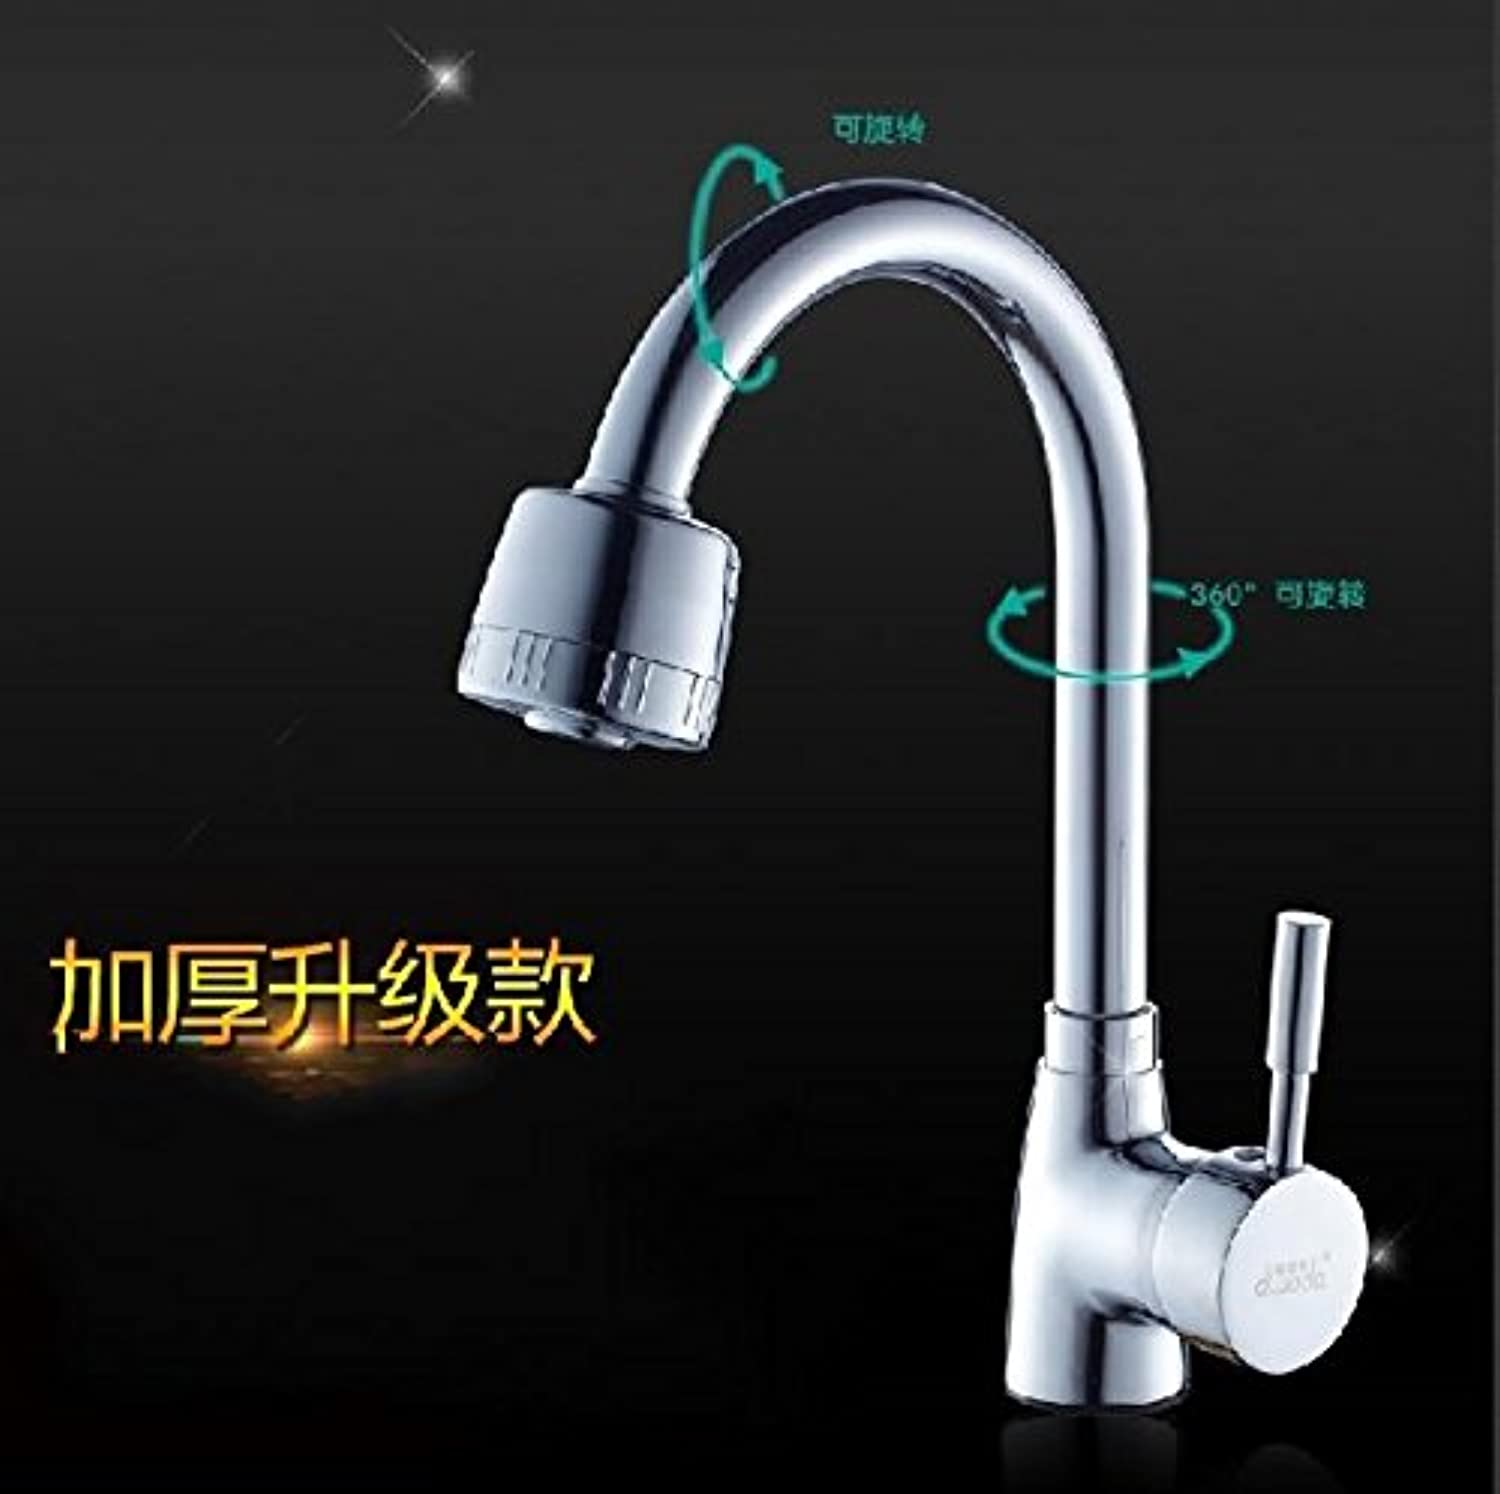 JWLT European style faucet hot and cold basin, copper kitchen sink, washbasin, washing basin, faucet redation,Thickening upgrade nozzle with hose